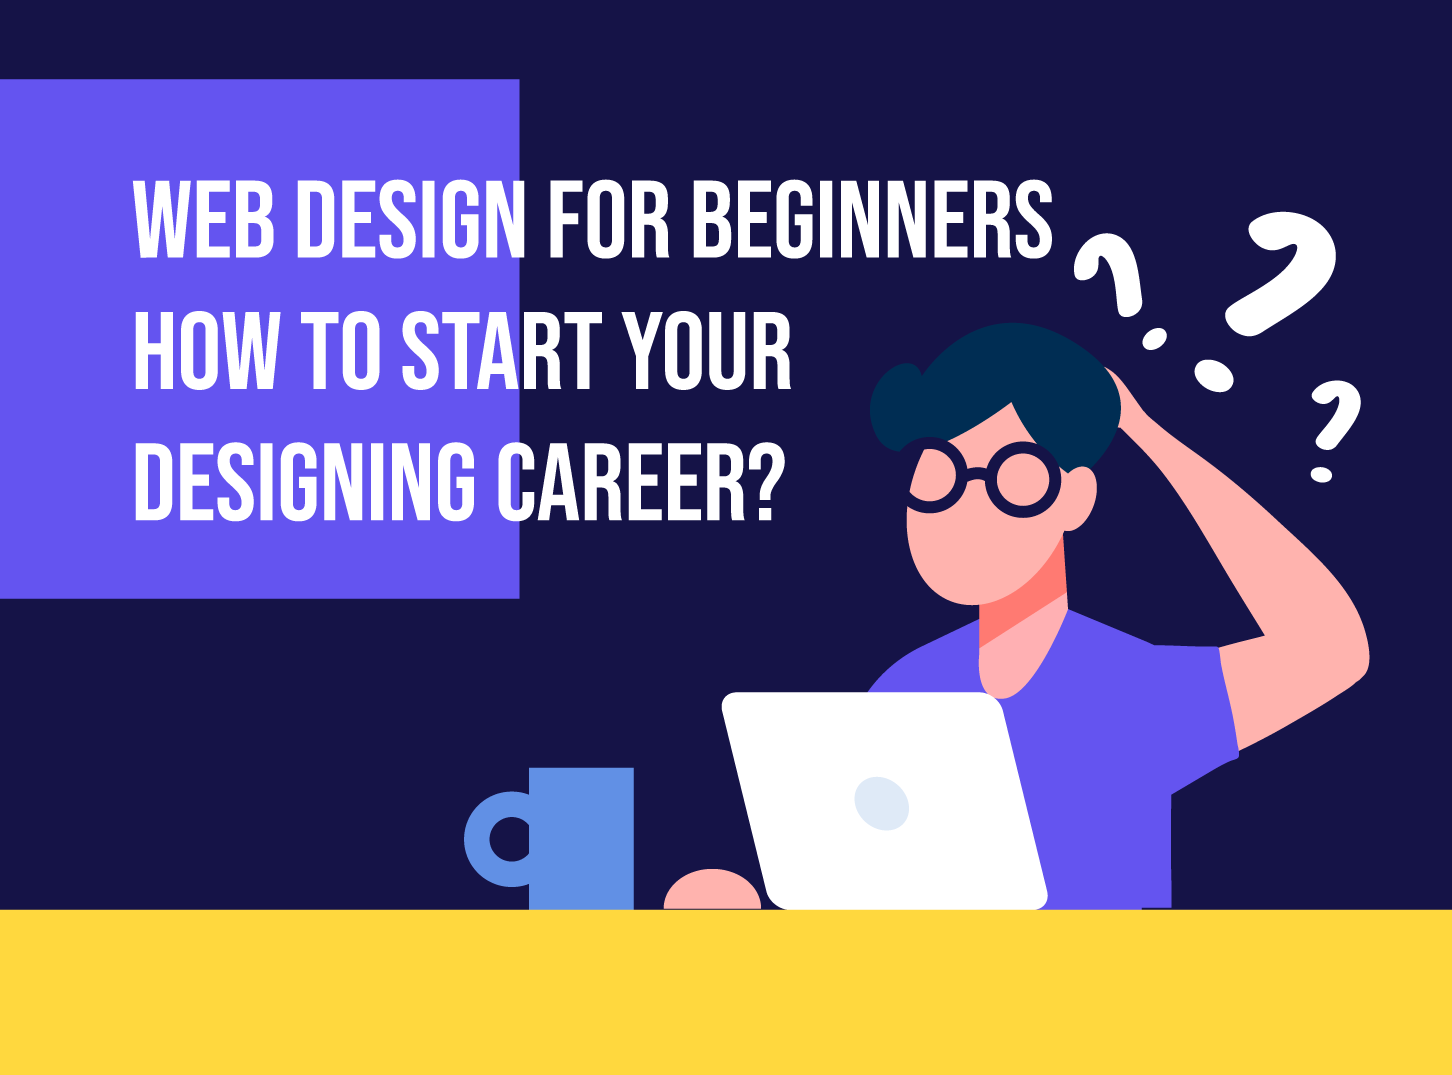 Web Design For Beginners - How to Start Your Designing Career - Inkyy.com